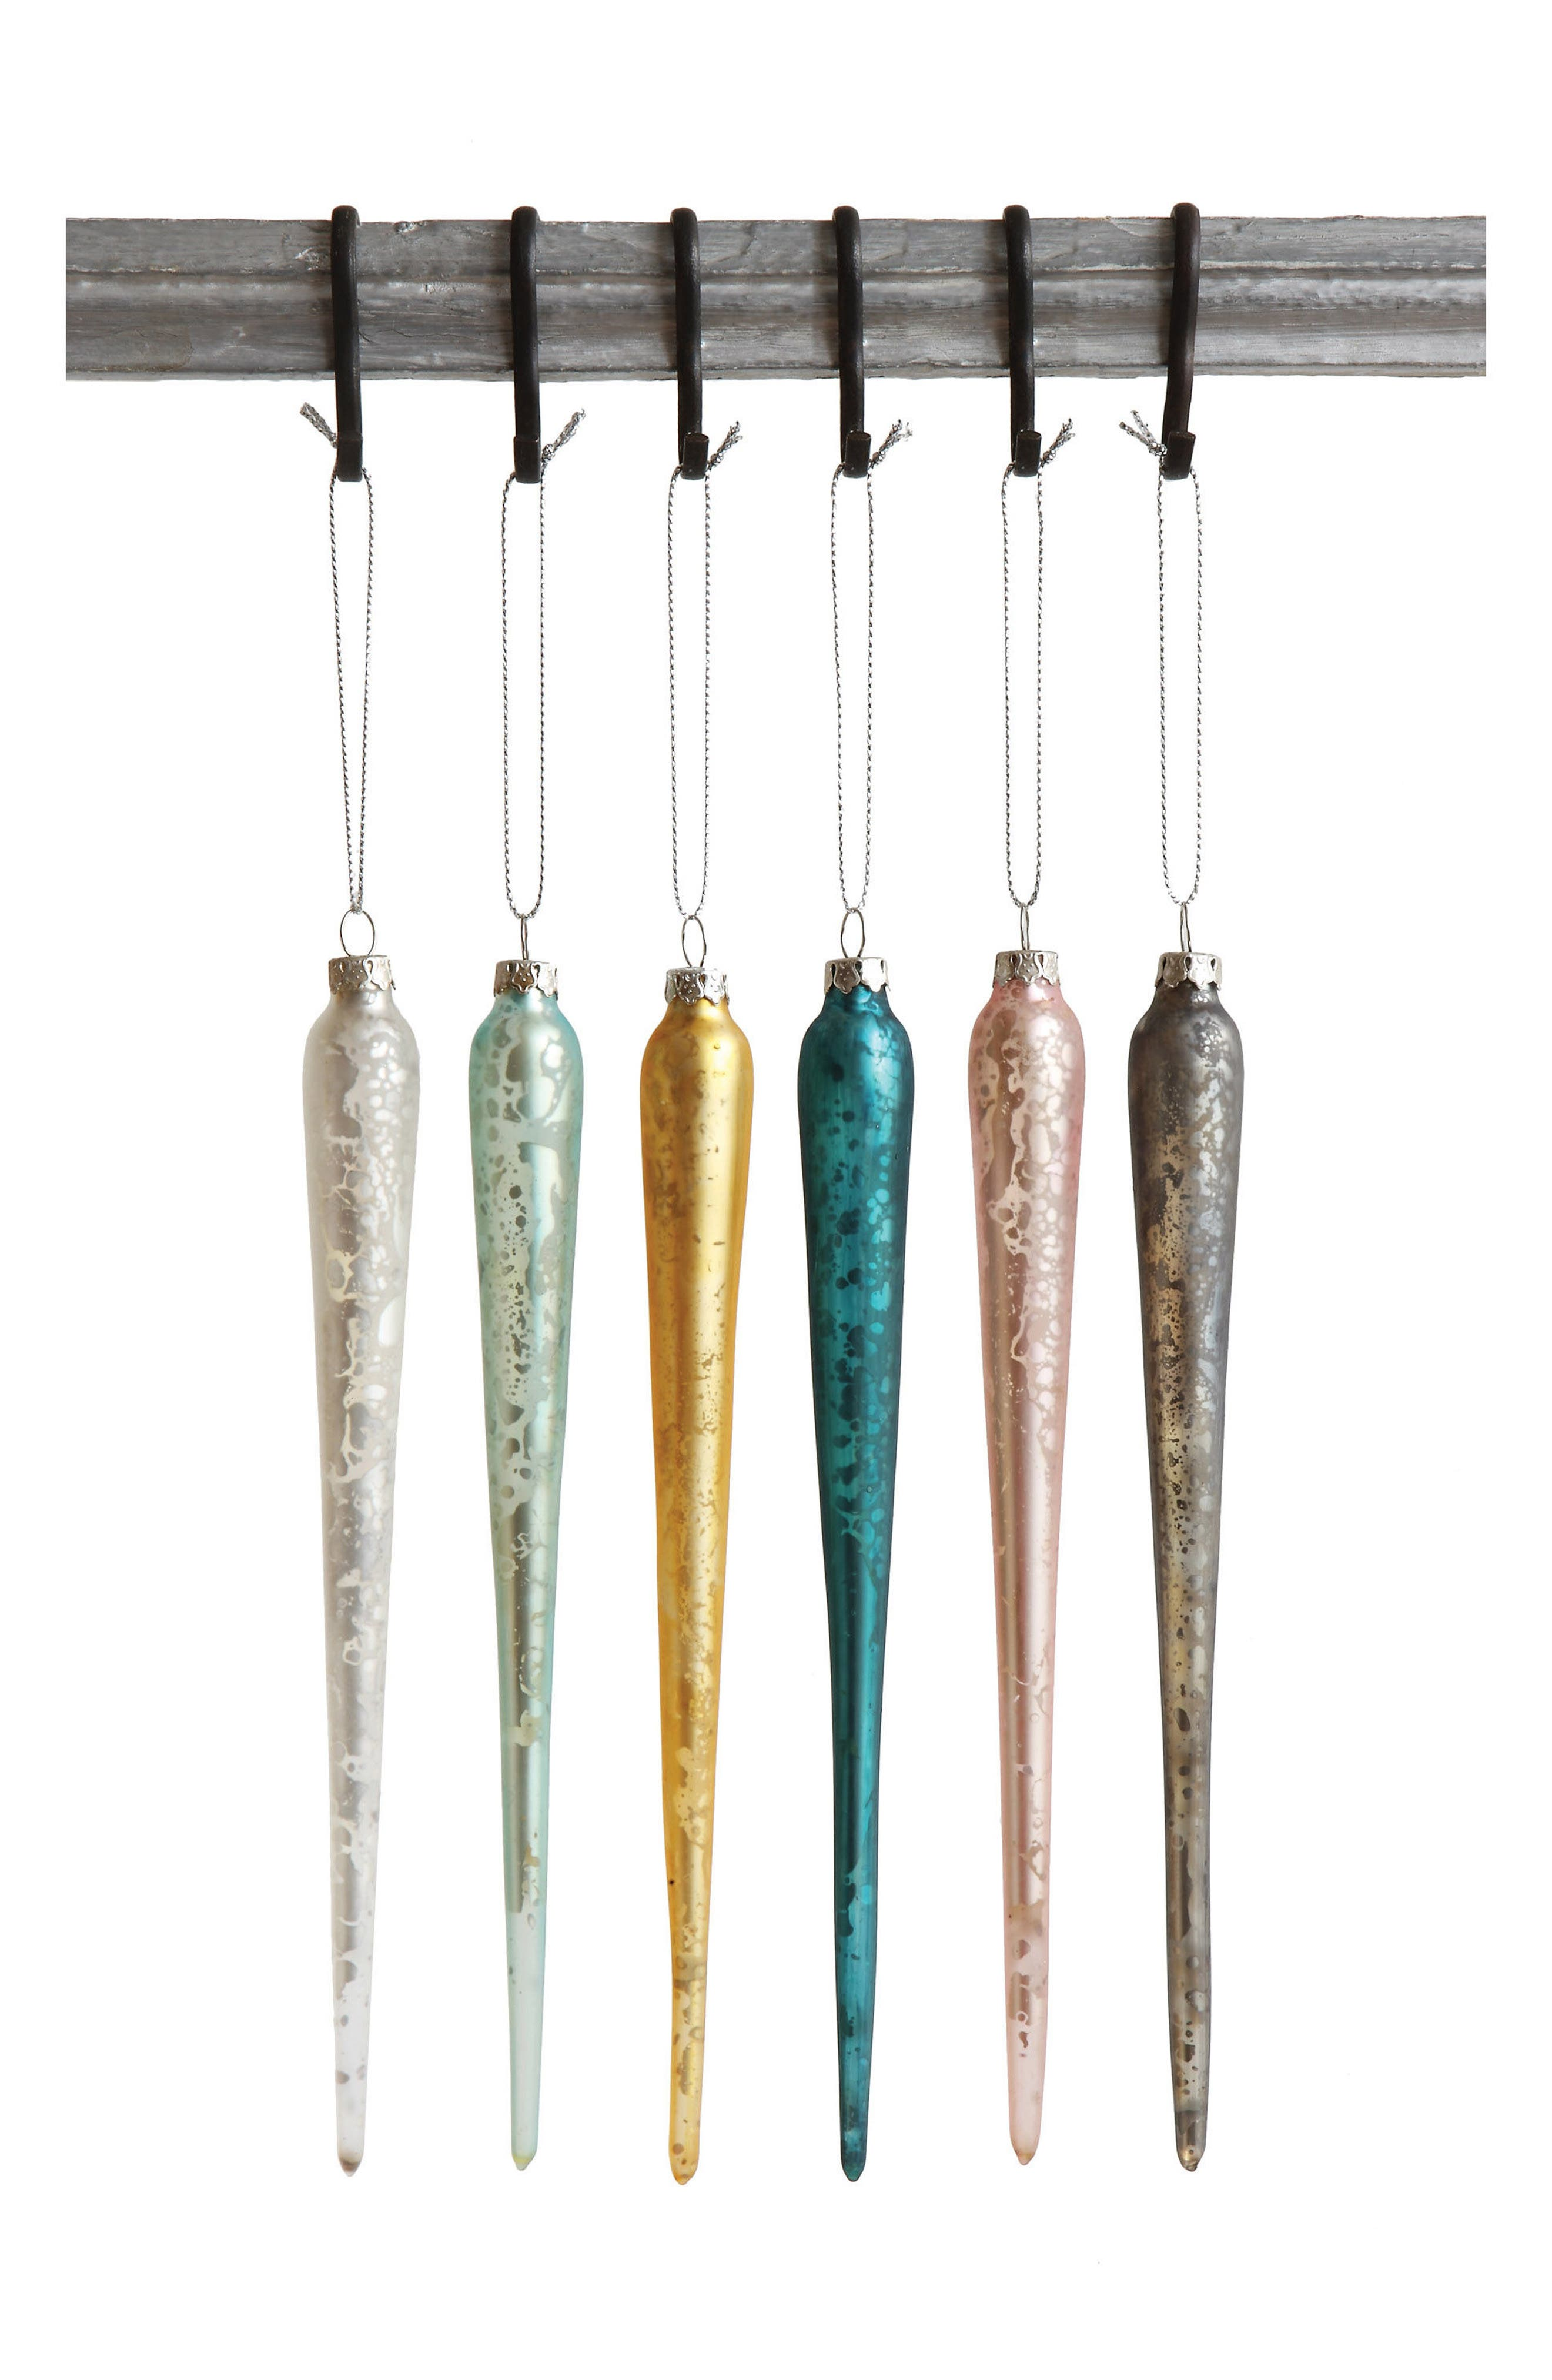 Alternate Image 1 Selected - Creative Co-Op Set of 6 Icicle Ornaments